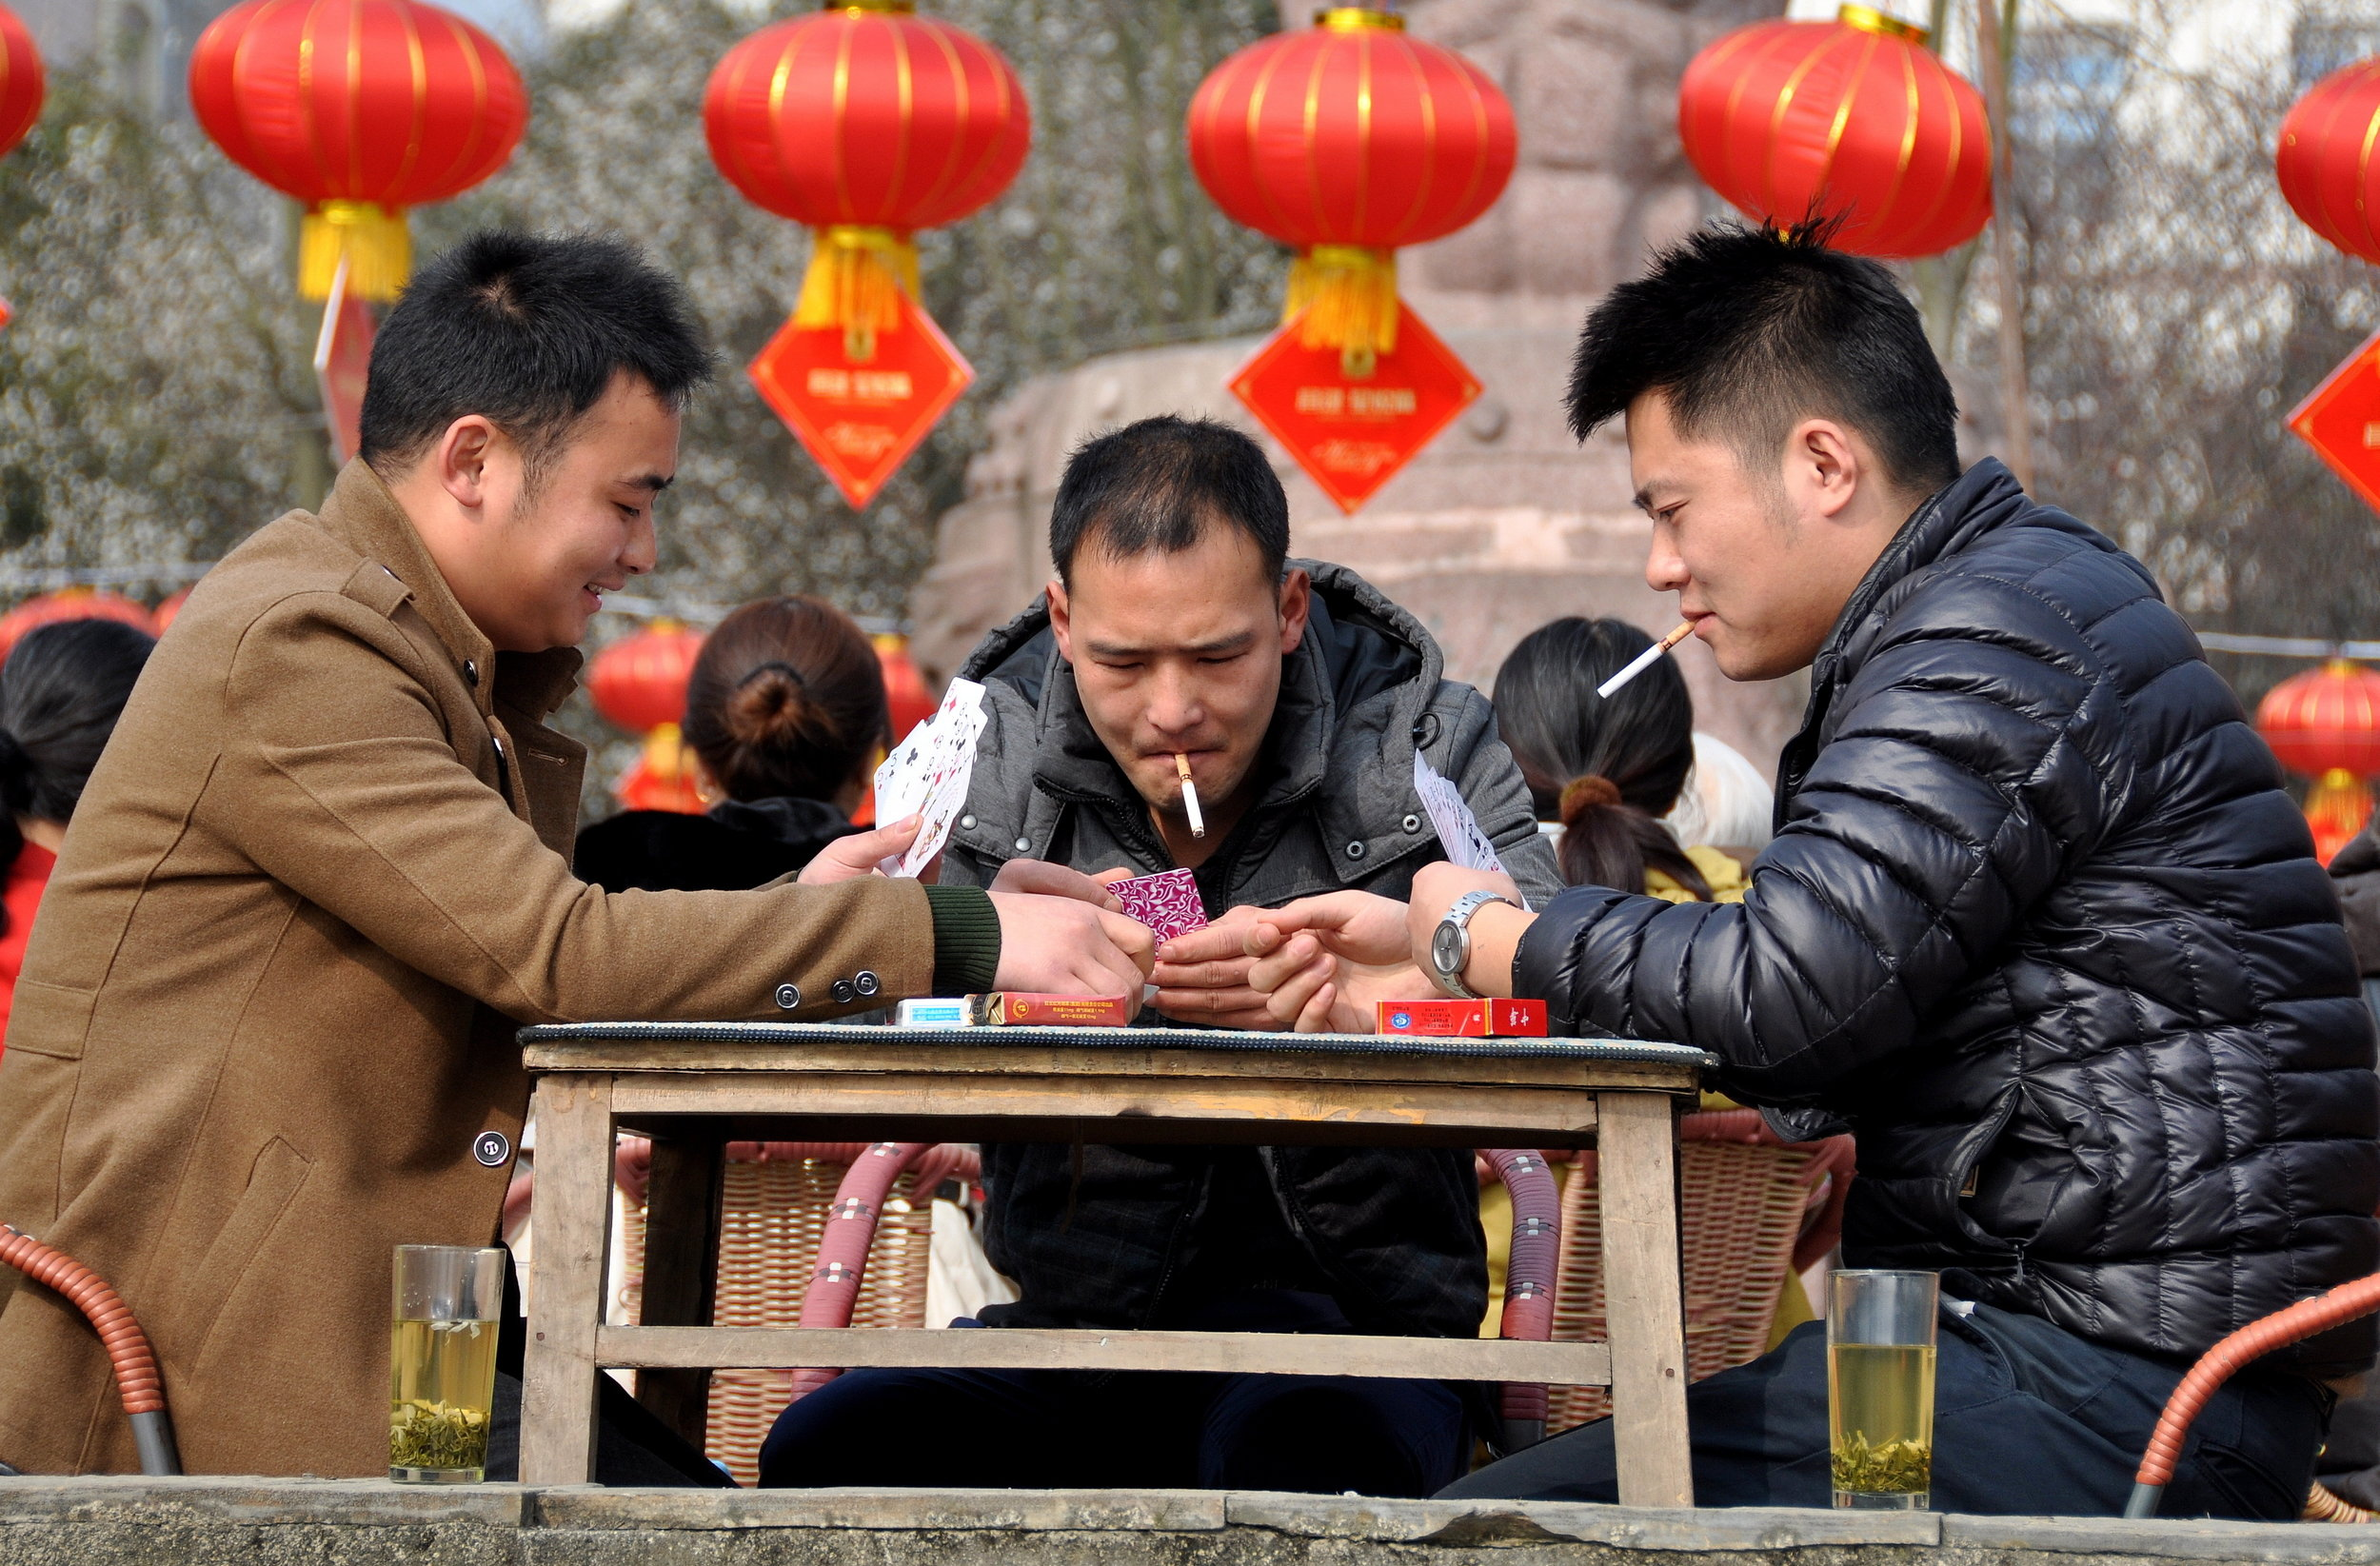 Men smoking in China. credit:LEE SNIDER PHOTO IMAGES/shutterstock